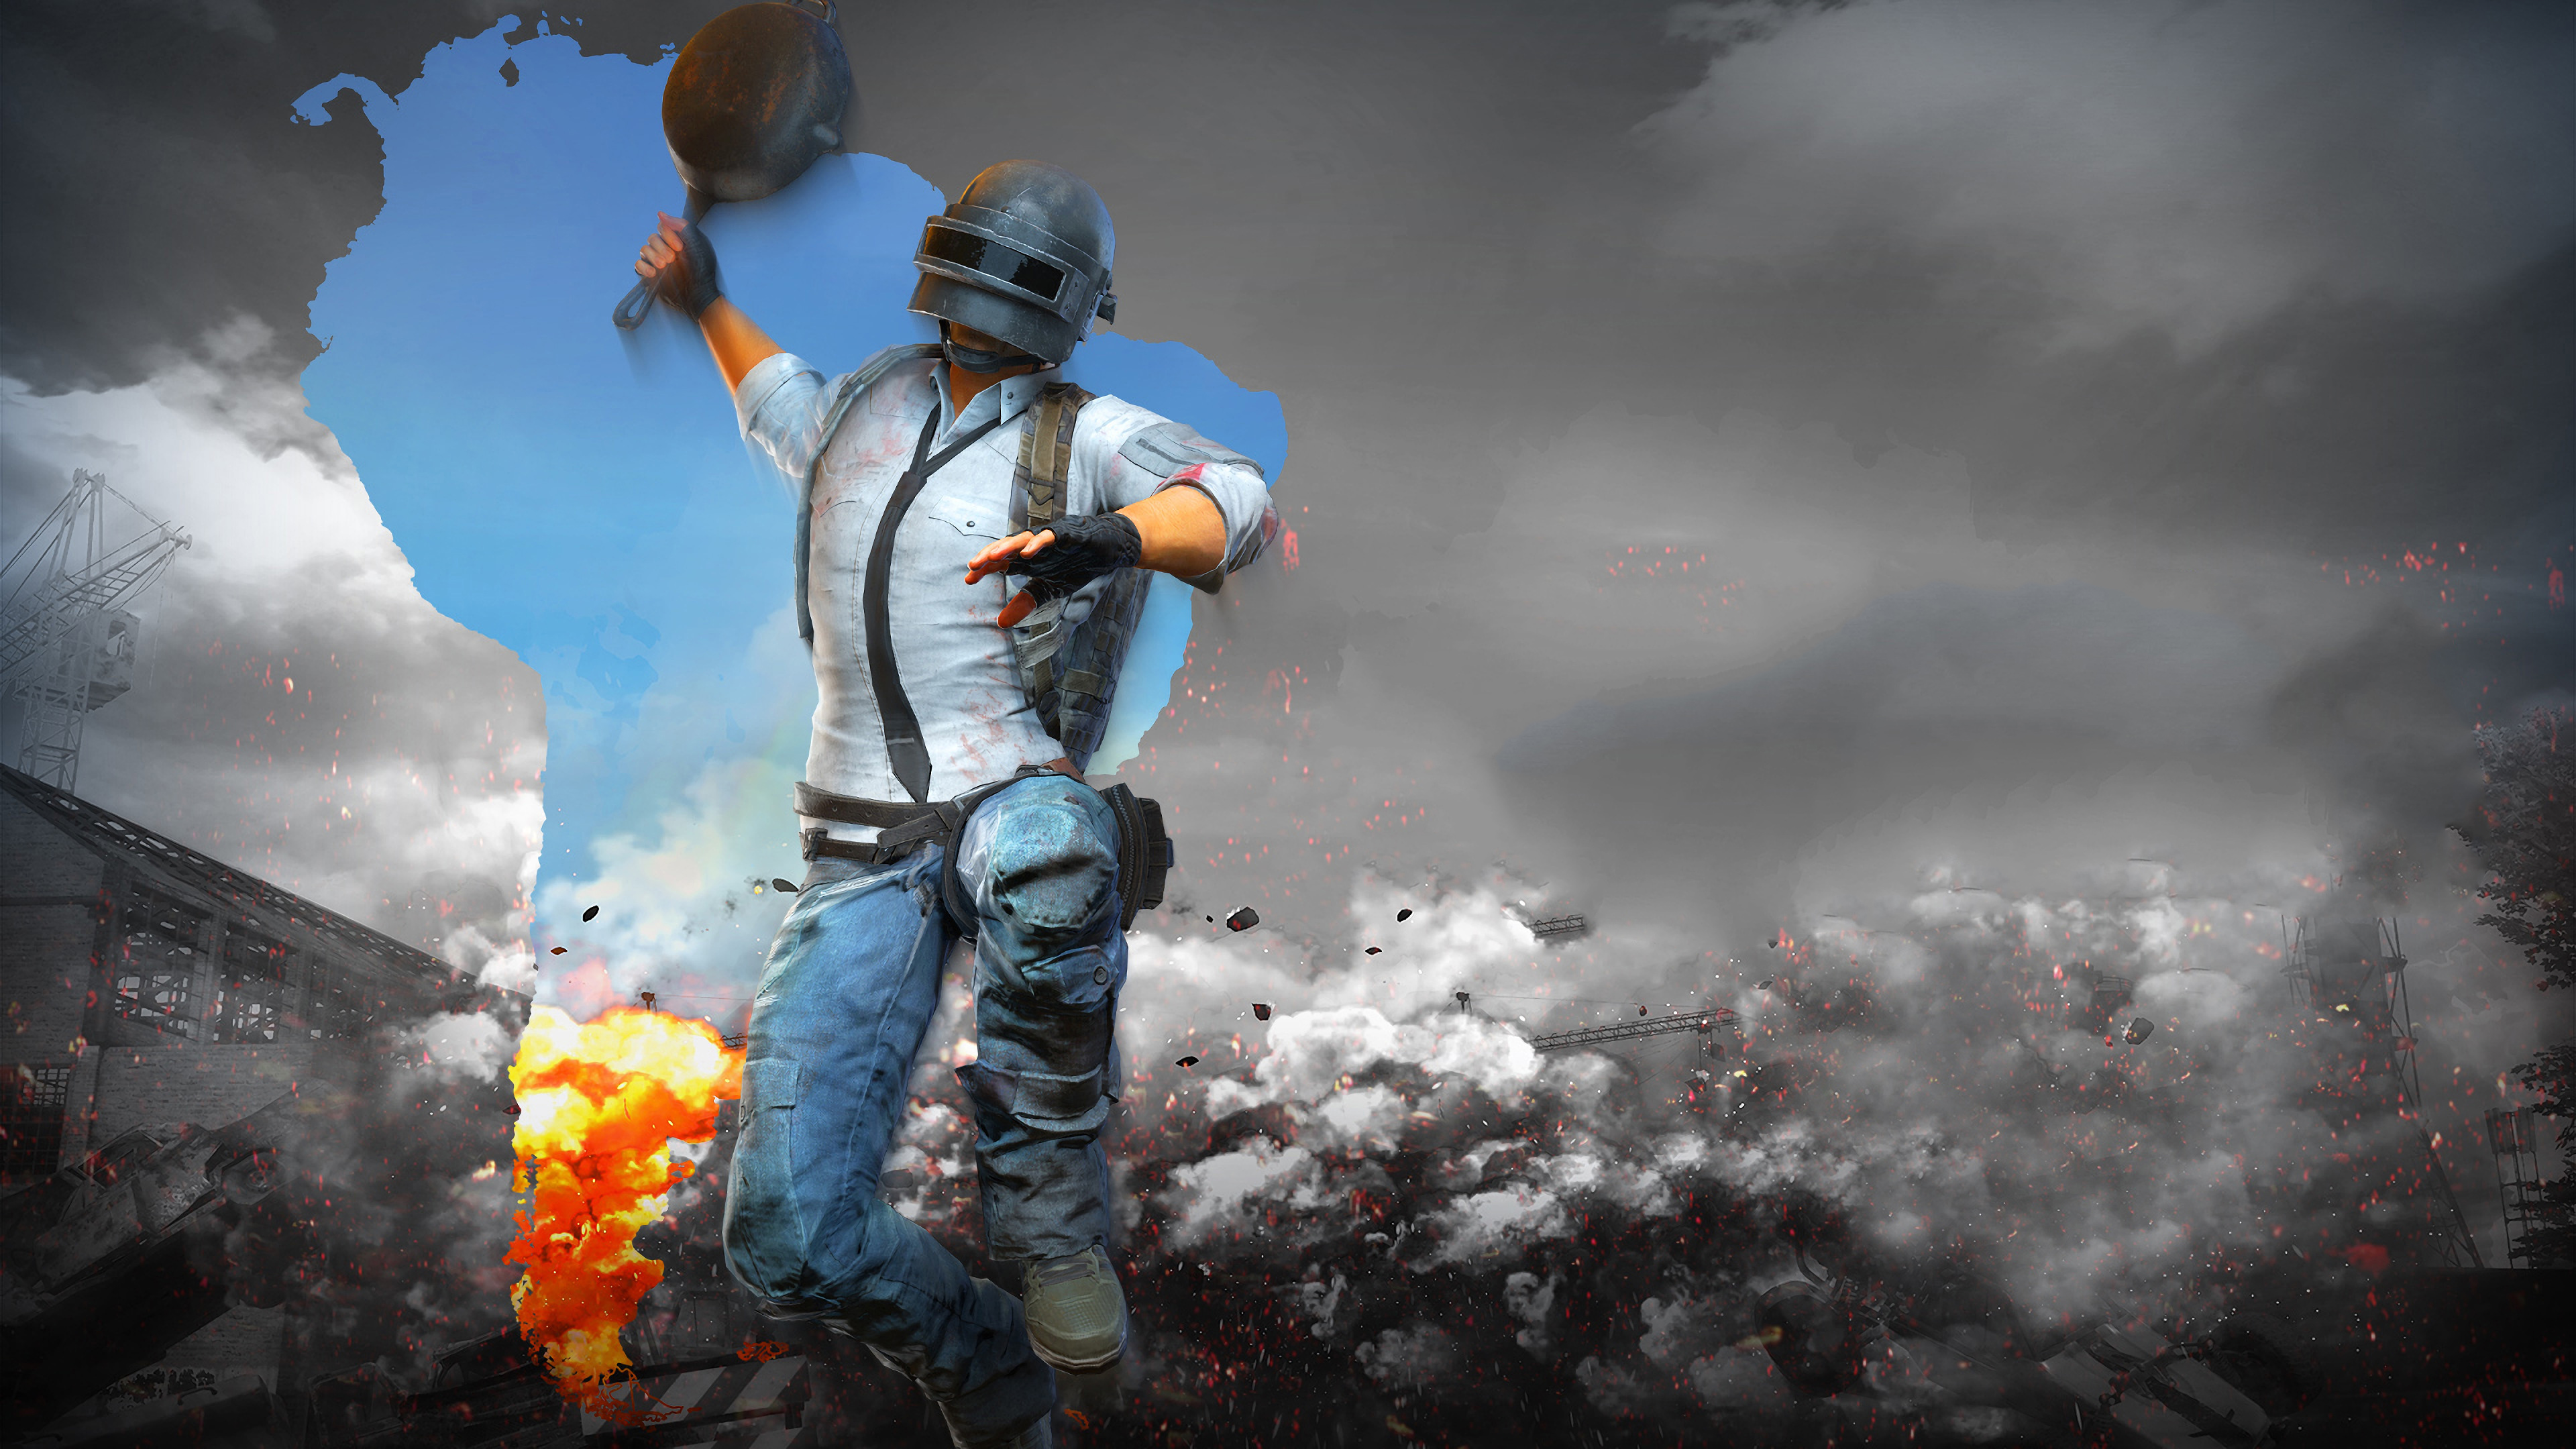 PUBG Helmet Man With Pan 4k, HD Games, 4k Wallpapers